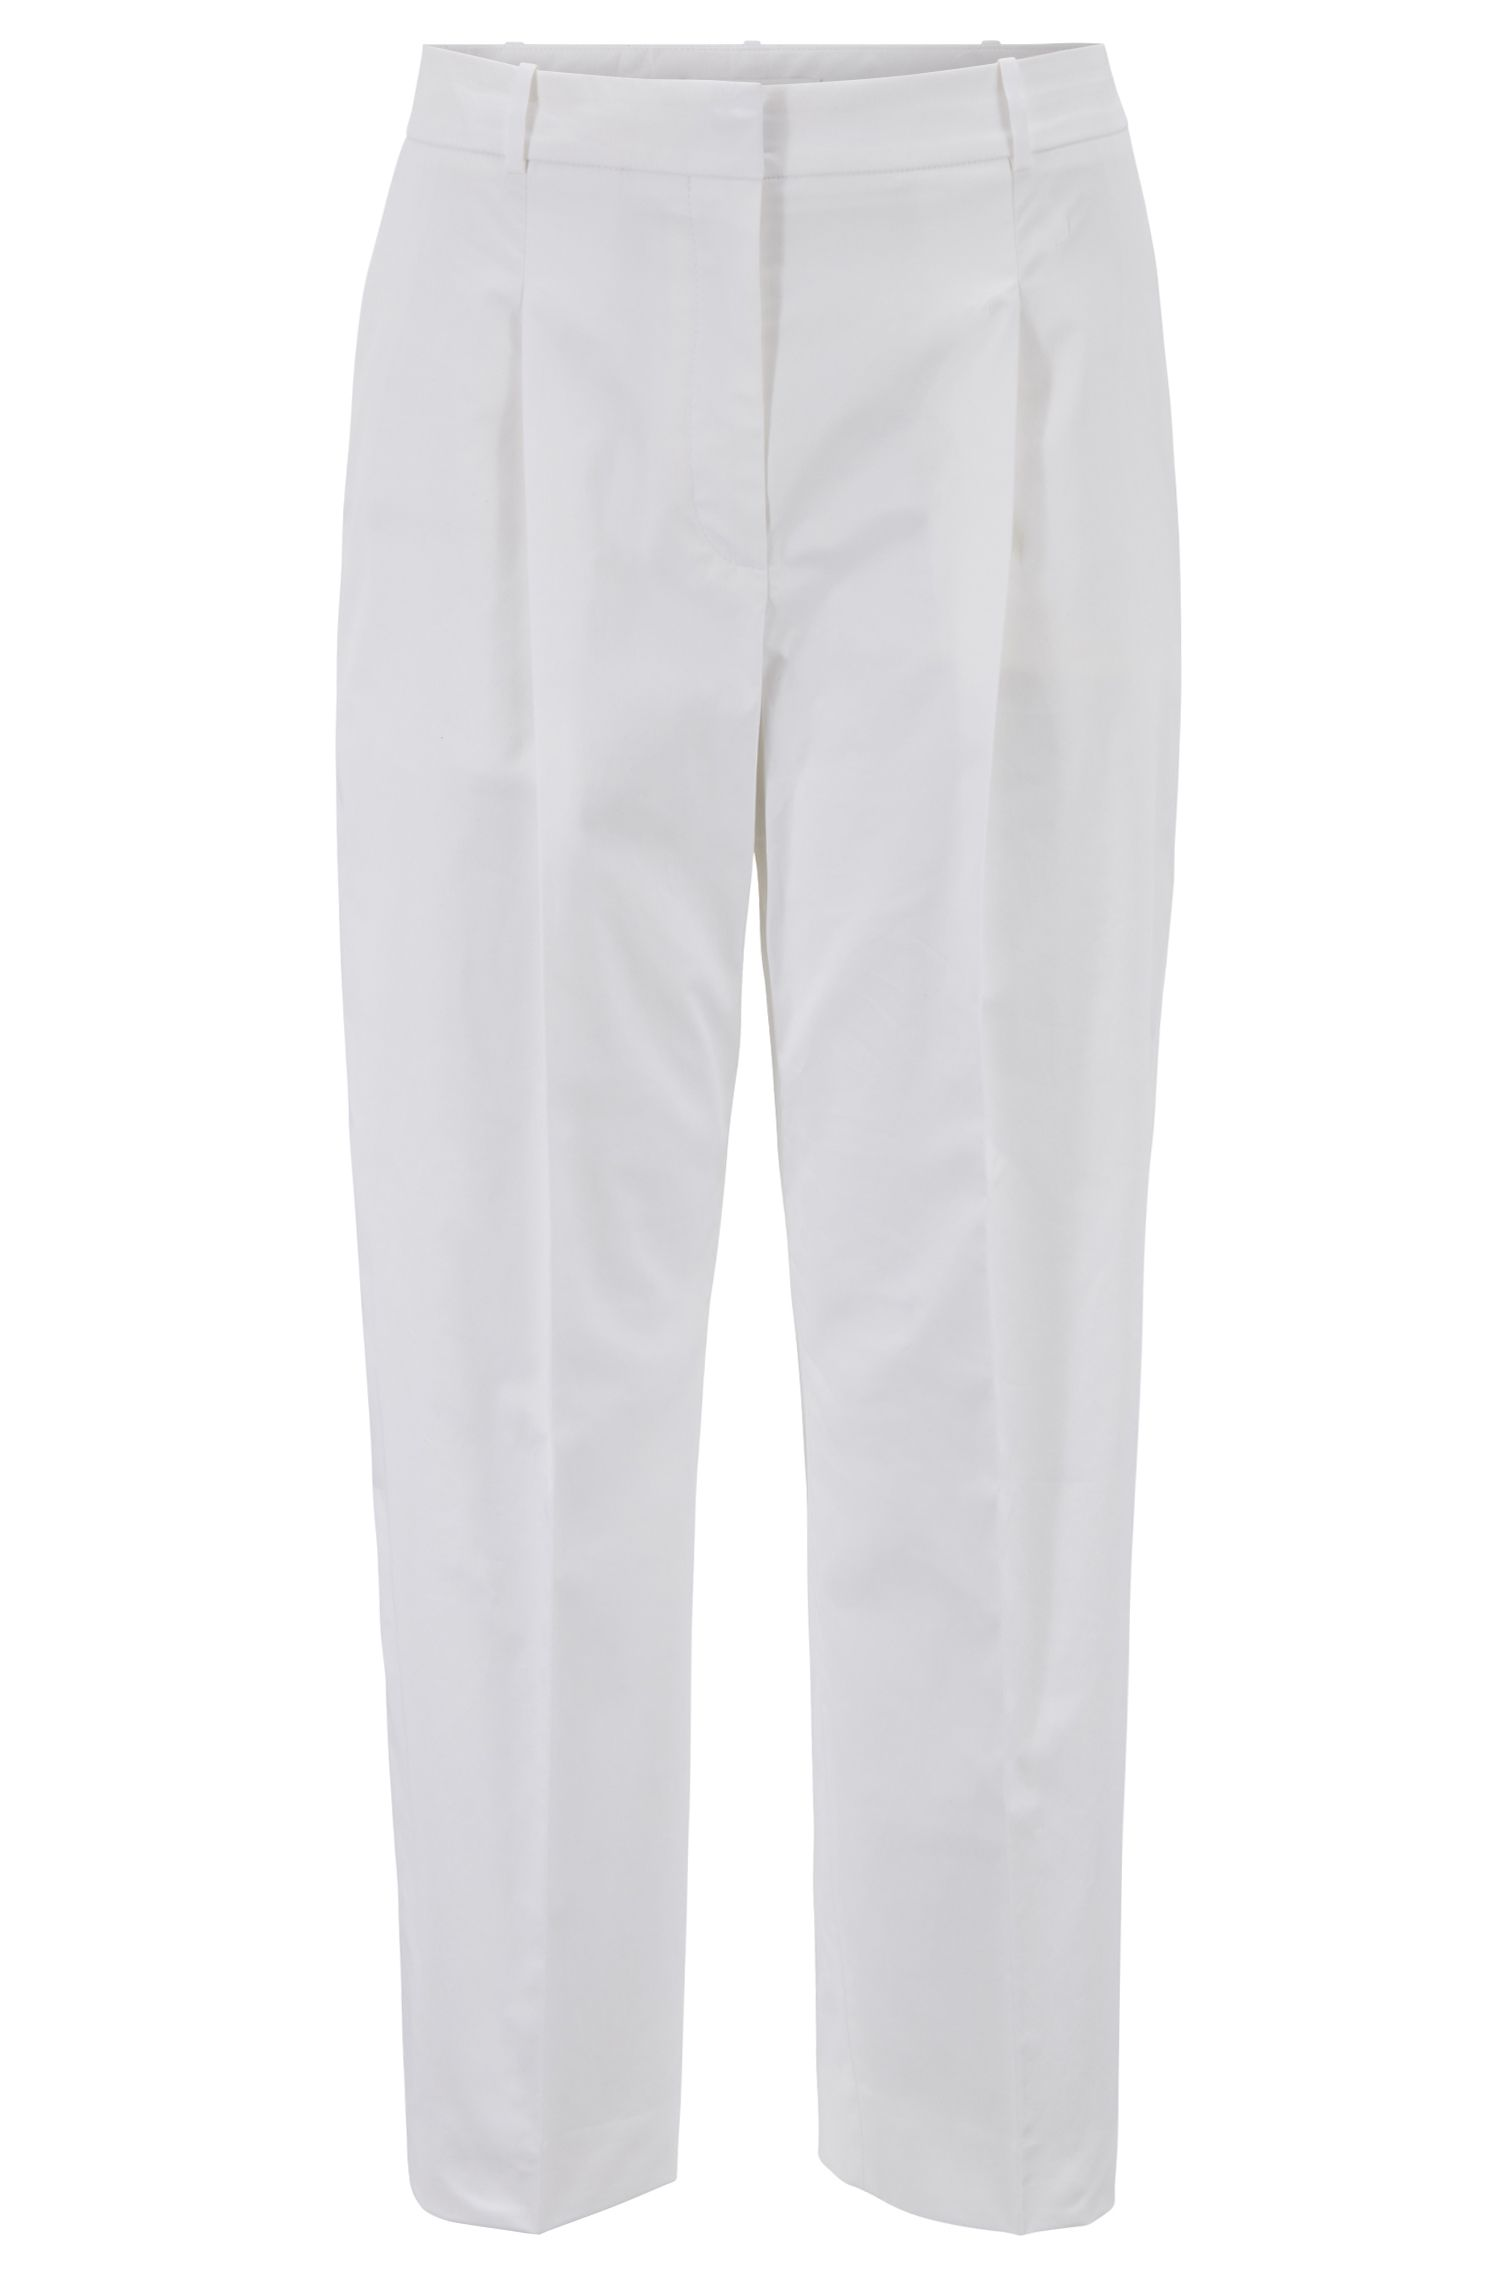 Pantalon court Relaxed Fit en coton stretch au toucher papier, Blanc